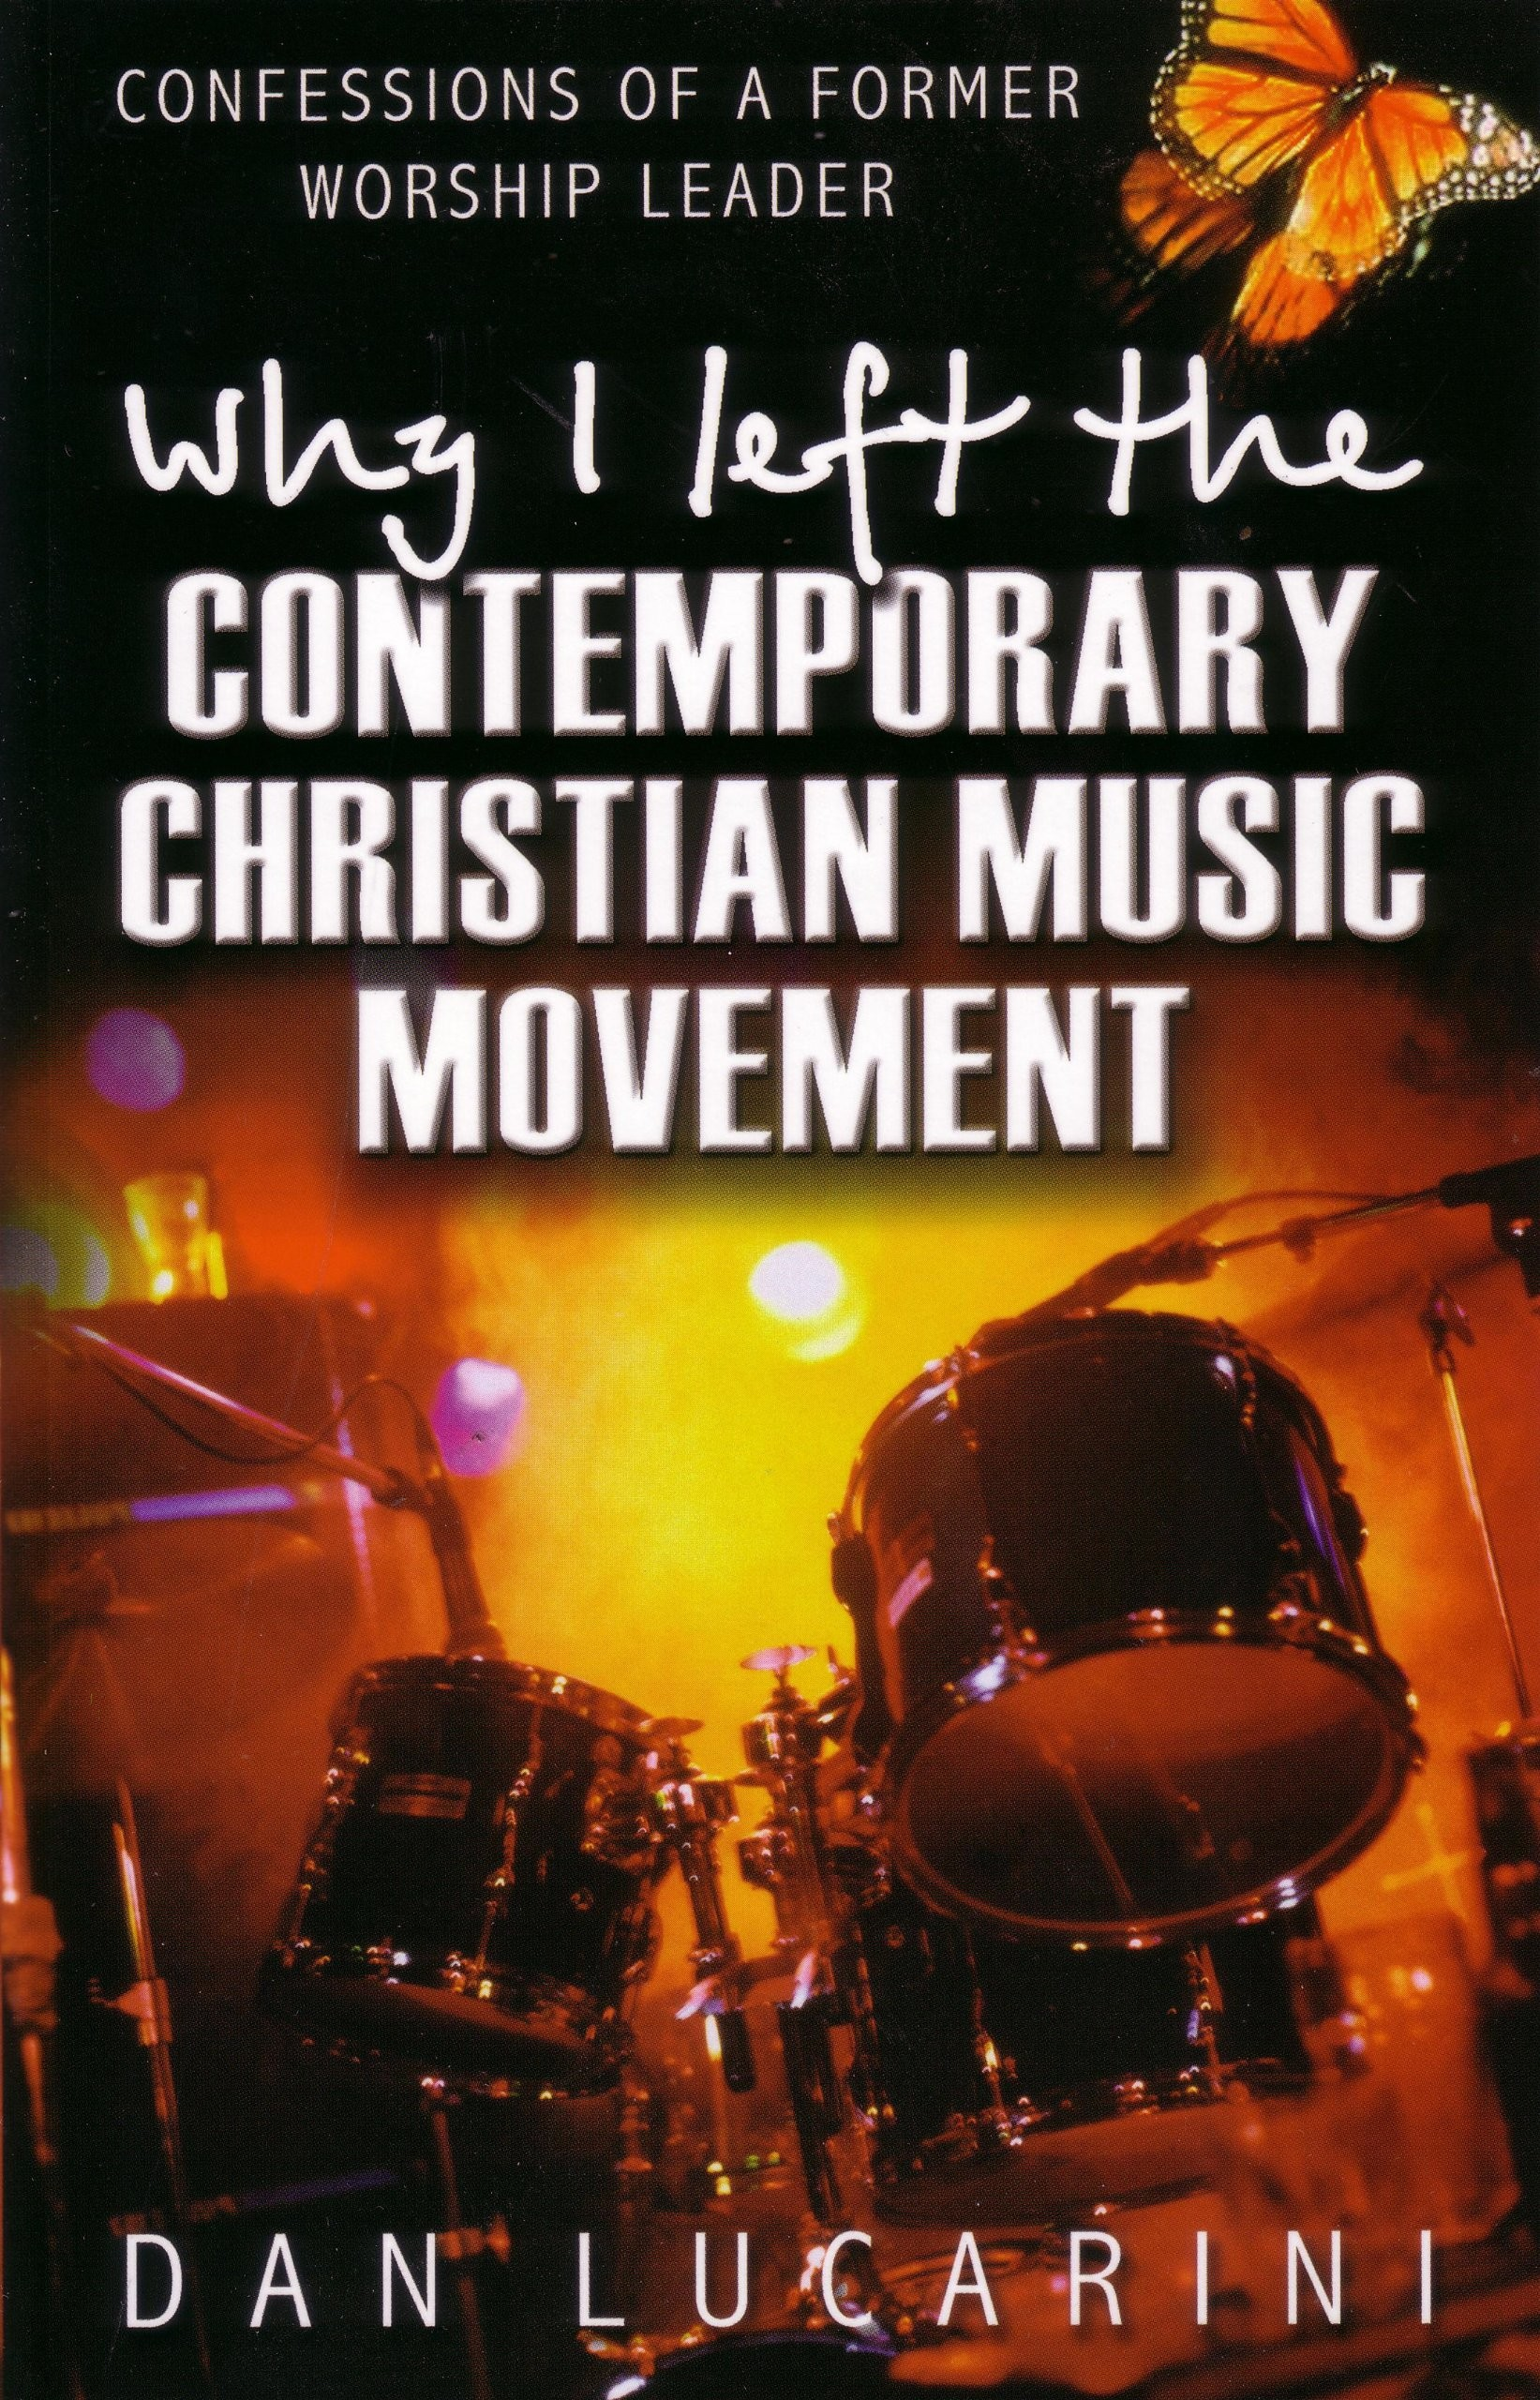 Why I Left the Contemporary Christian Music Movement: Confessions of a  Former Worship Leader: Dan Lucarini: 9780852345177: Amazon.com: Books